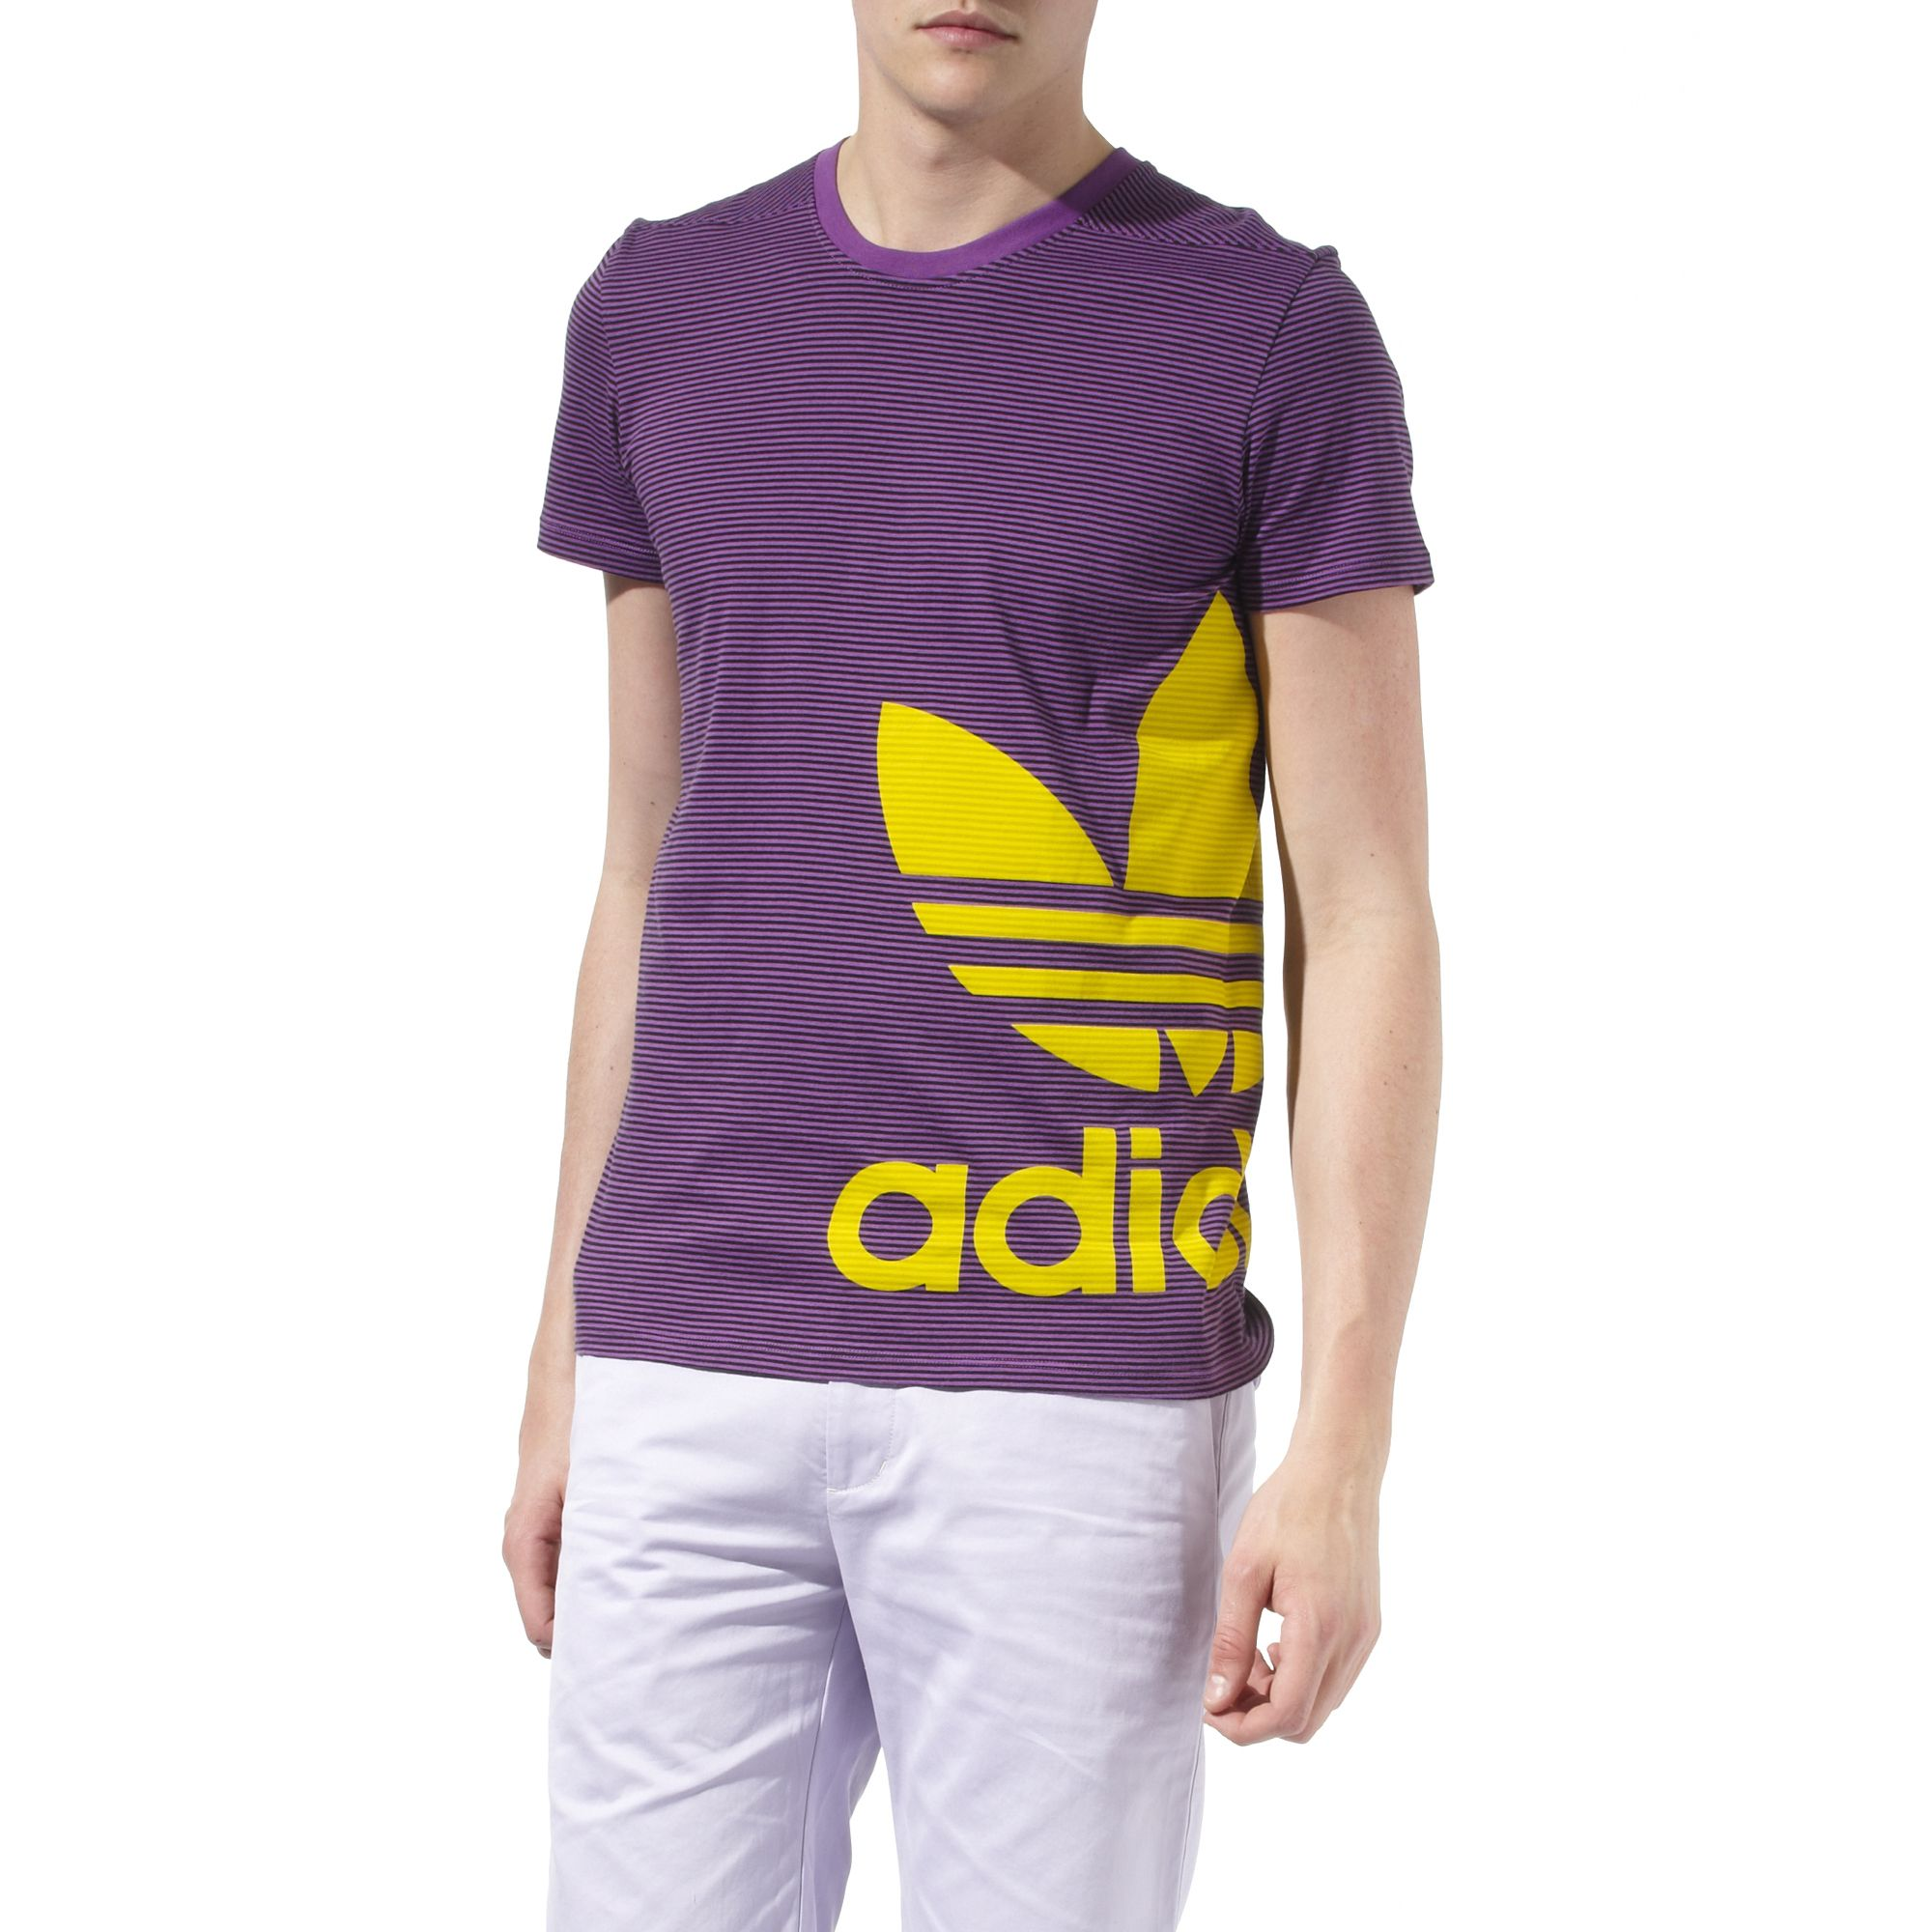 Adidas striped logo t shirt in purple for men lyst for Purple and black striped t shirt